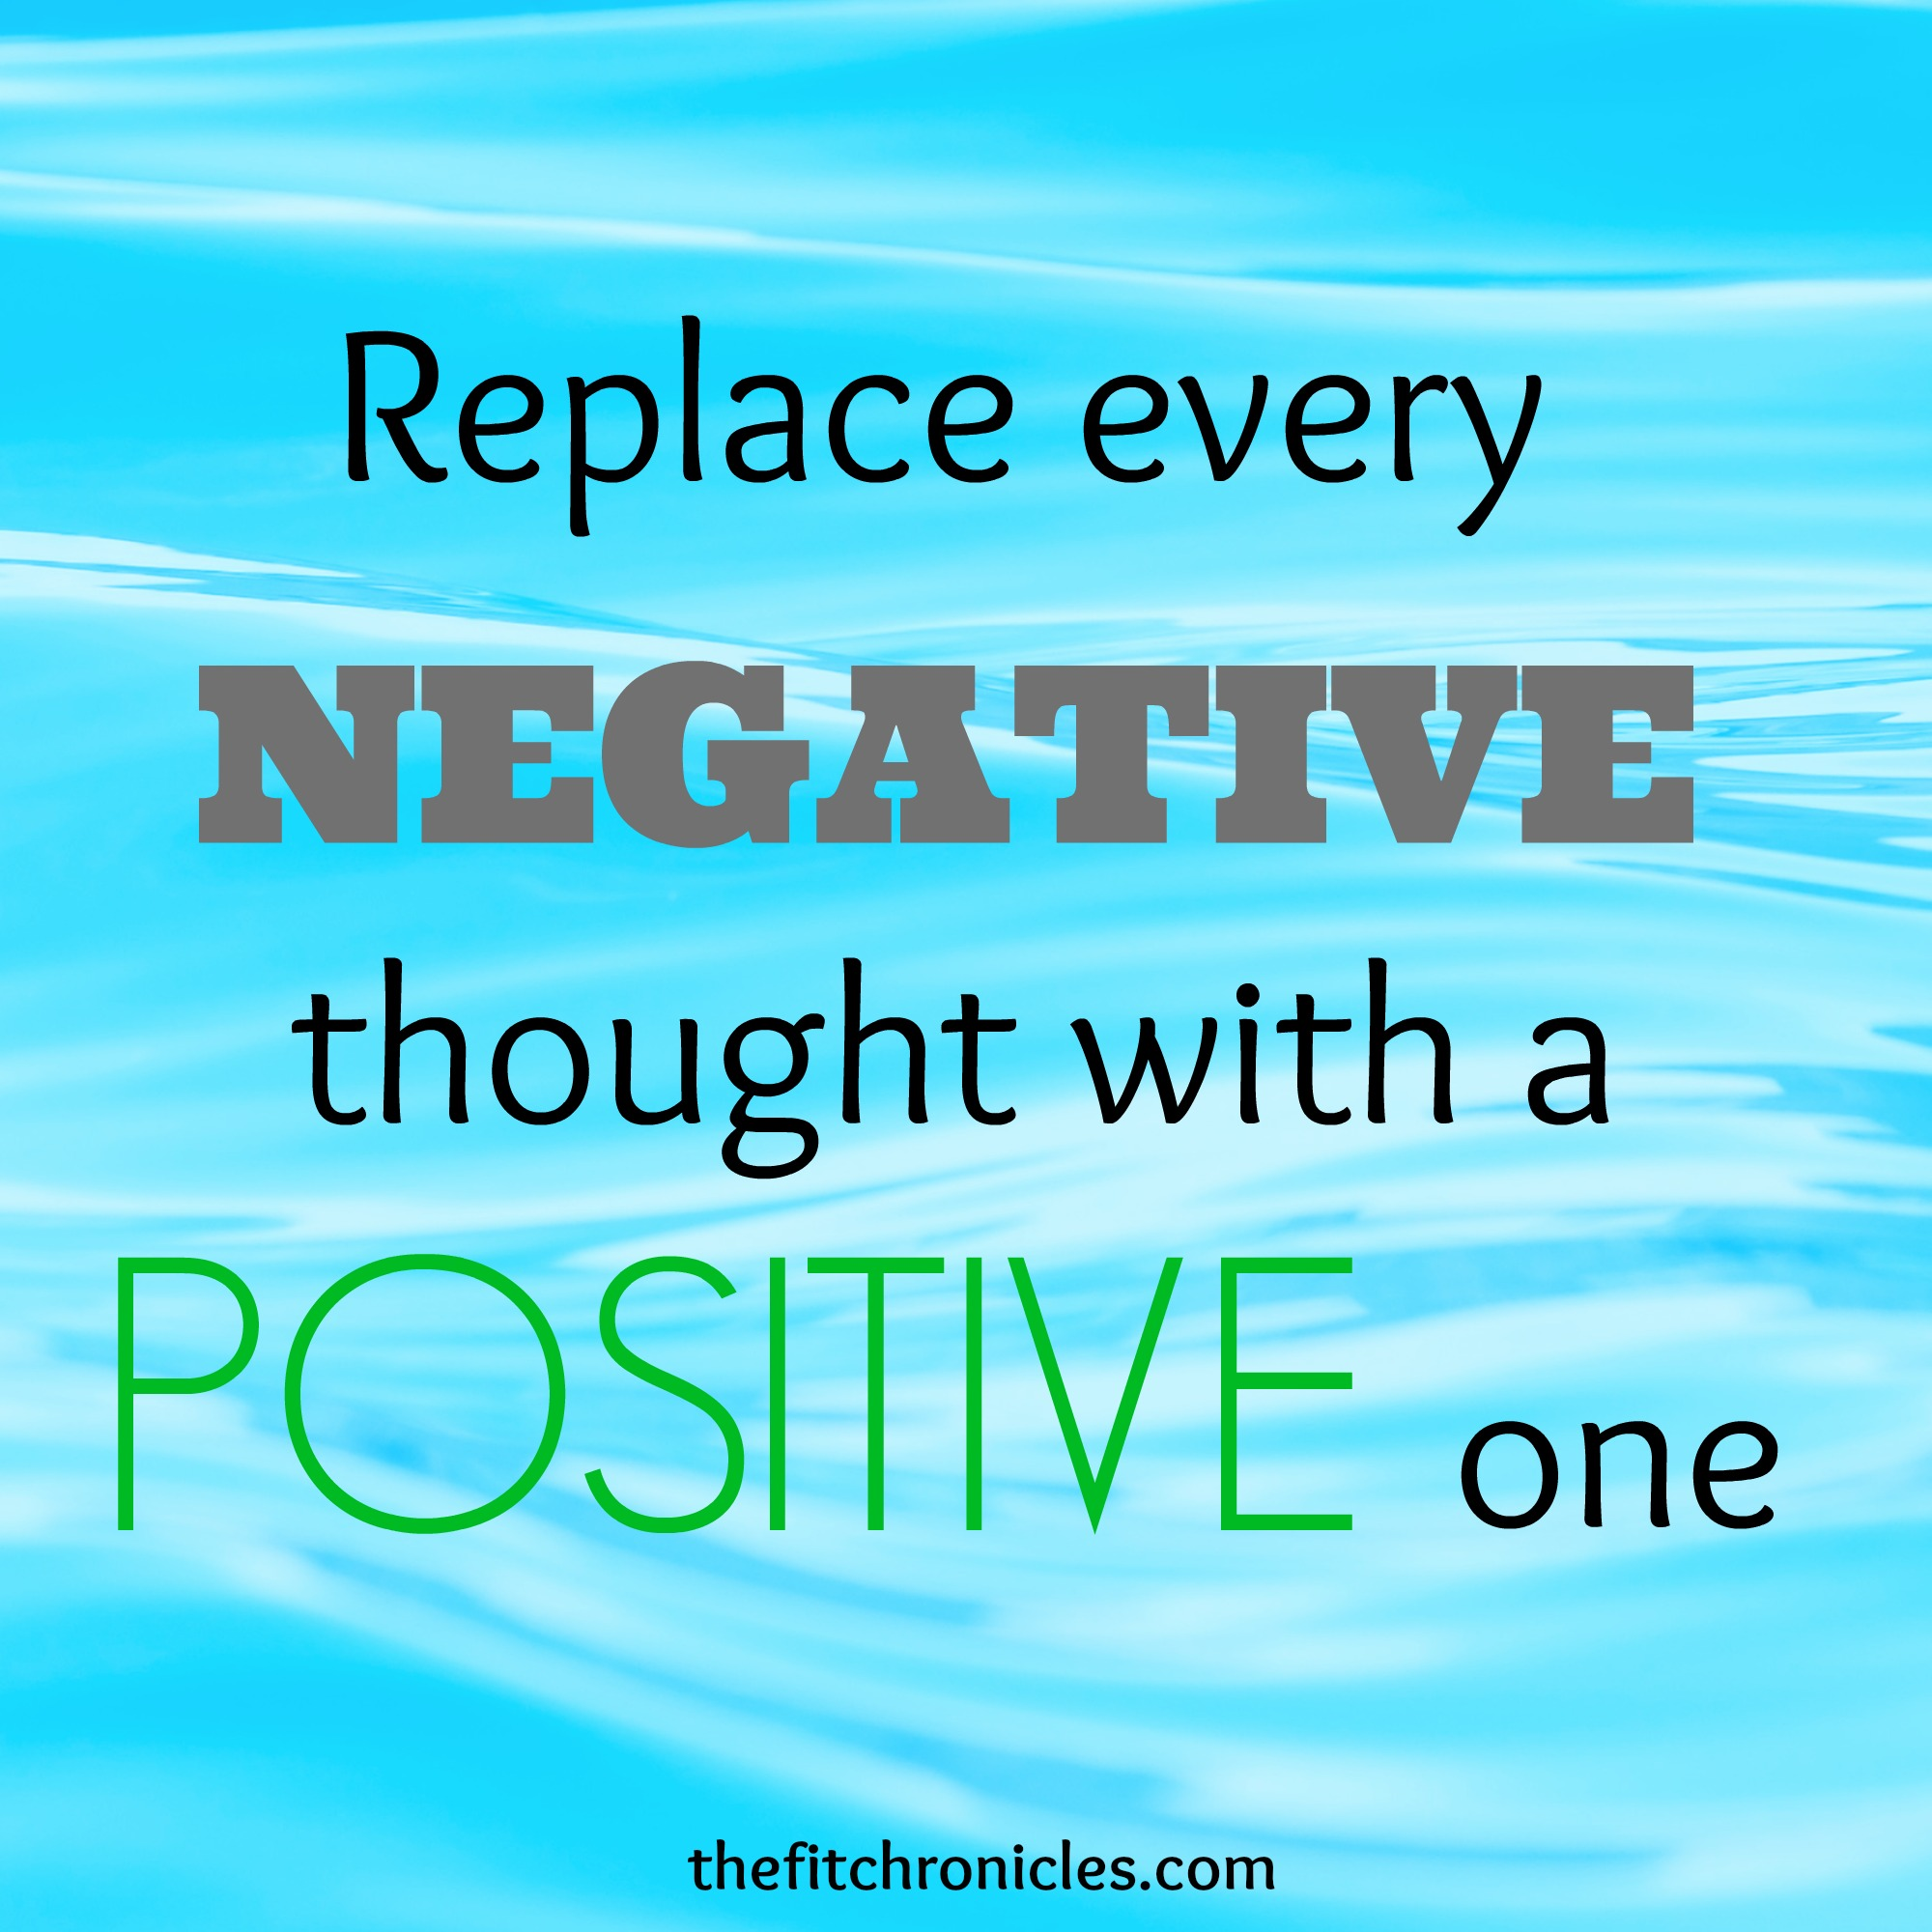 Have Positive Thoughts Quotes: Quotes About Positive Thoughts (132 Quotes